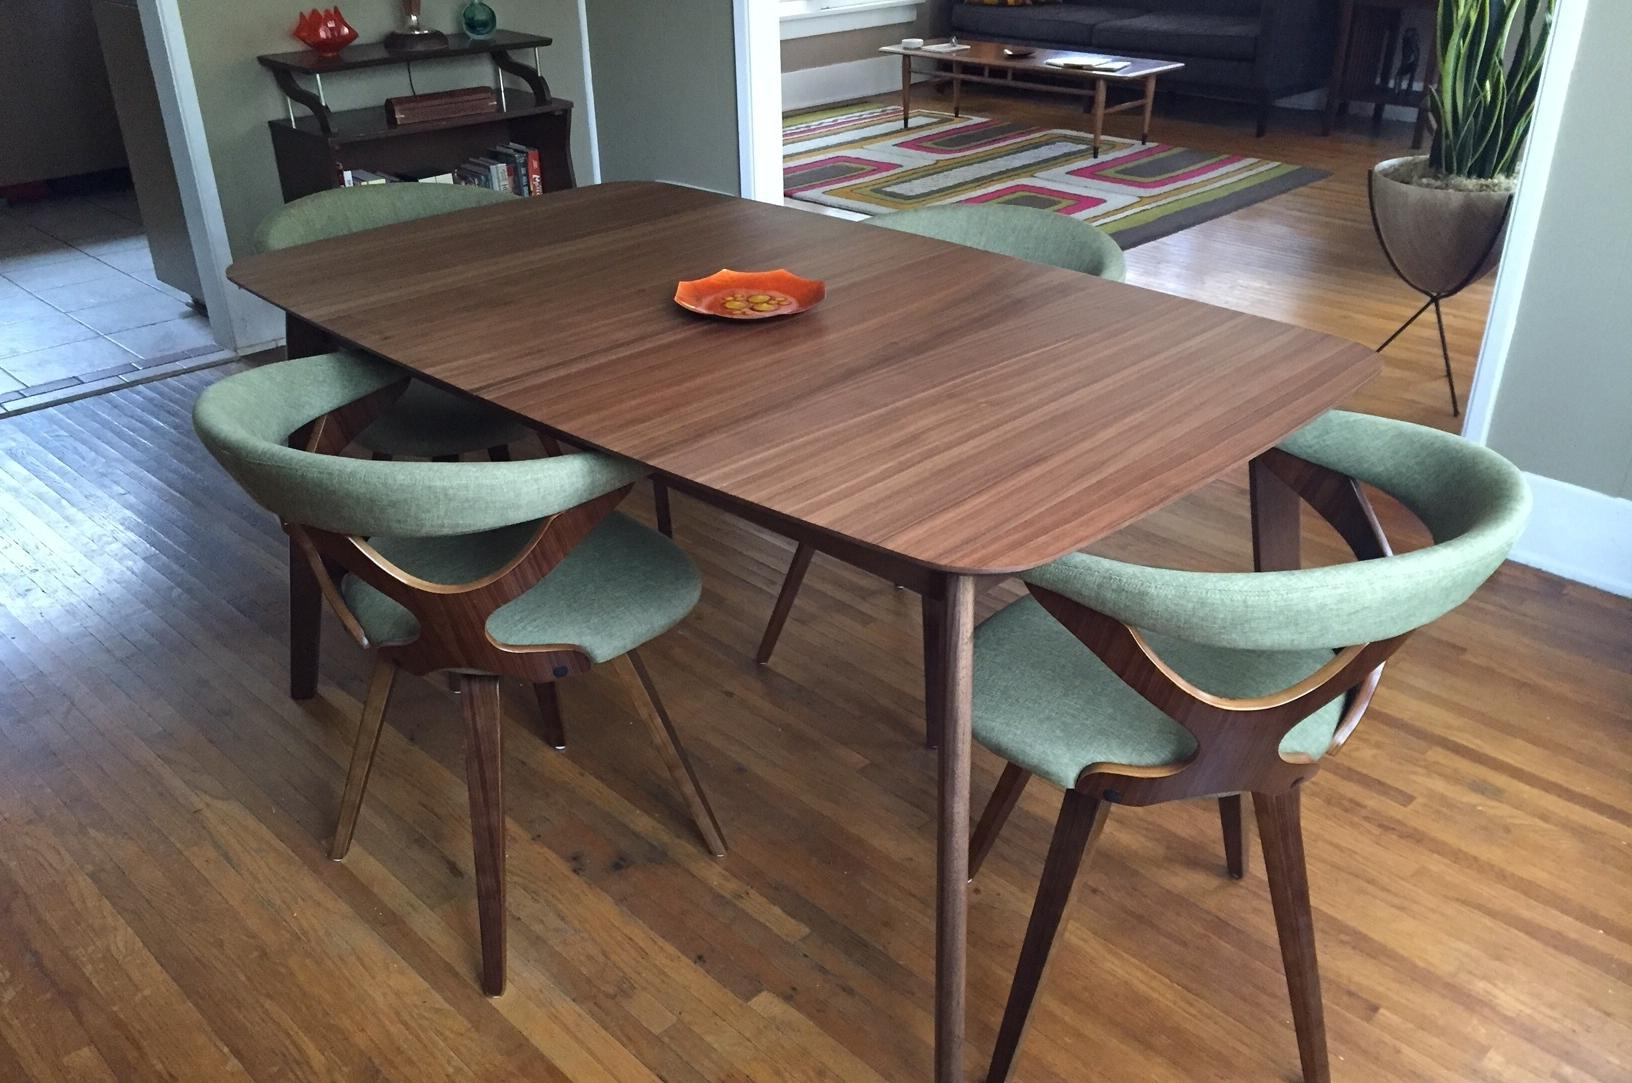 Famous Mix And Match Is The Modern Way To Furnish A Dining Room With Mid Century Rectangular Top Dining Tables With Wood Legs (View 19 of 25)